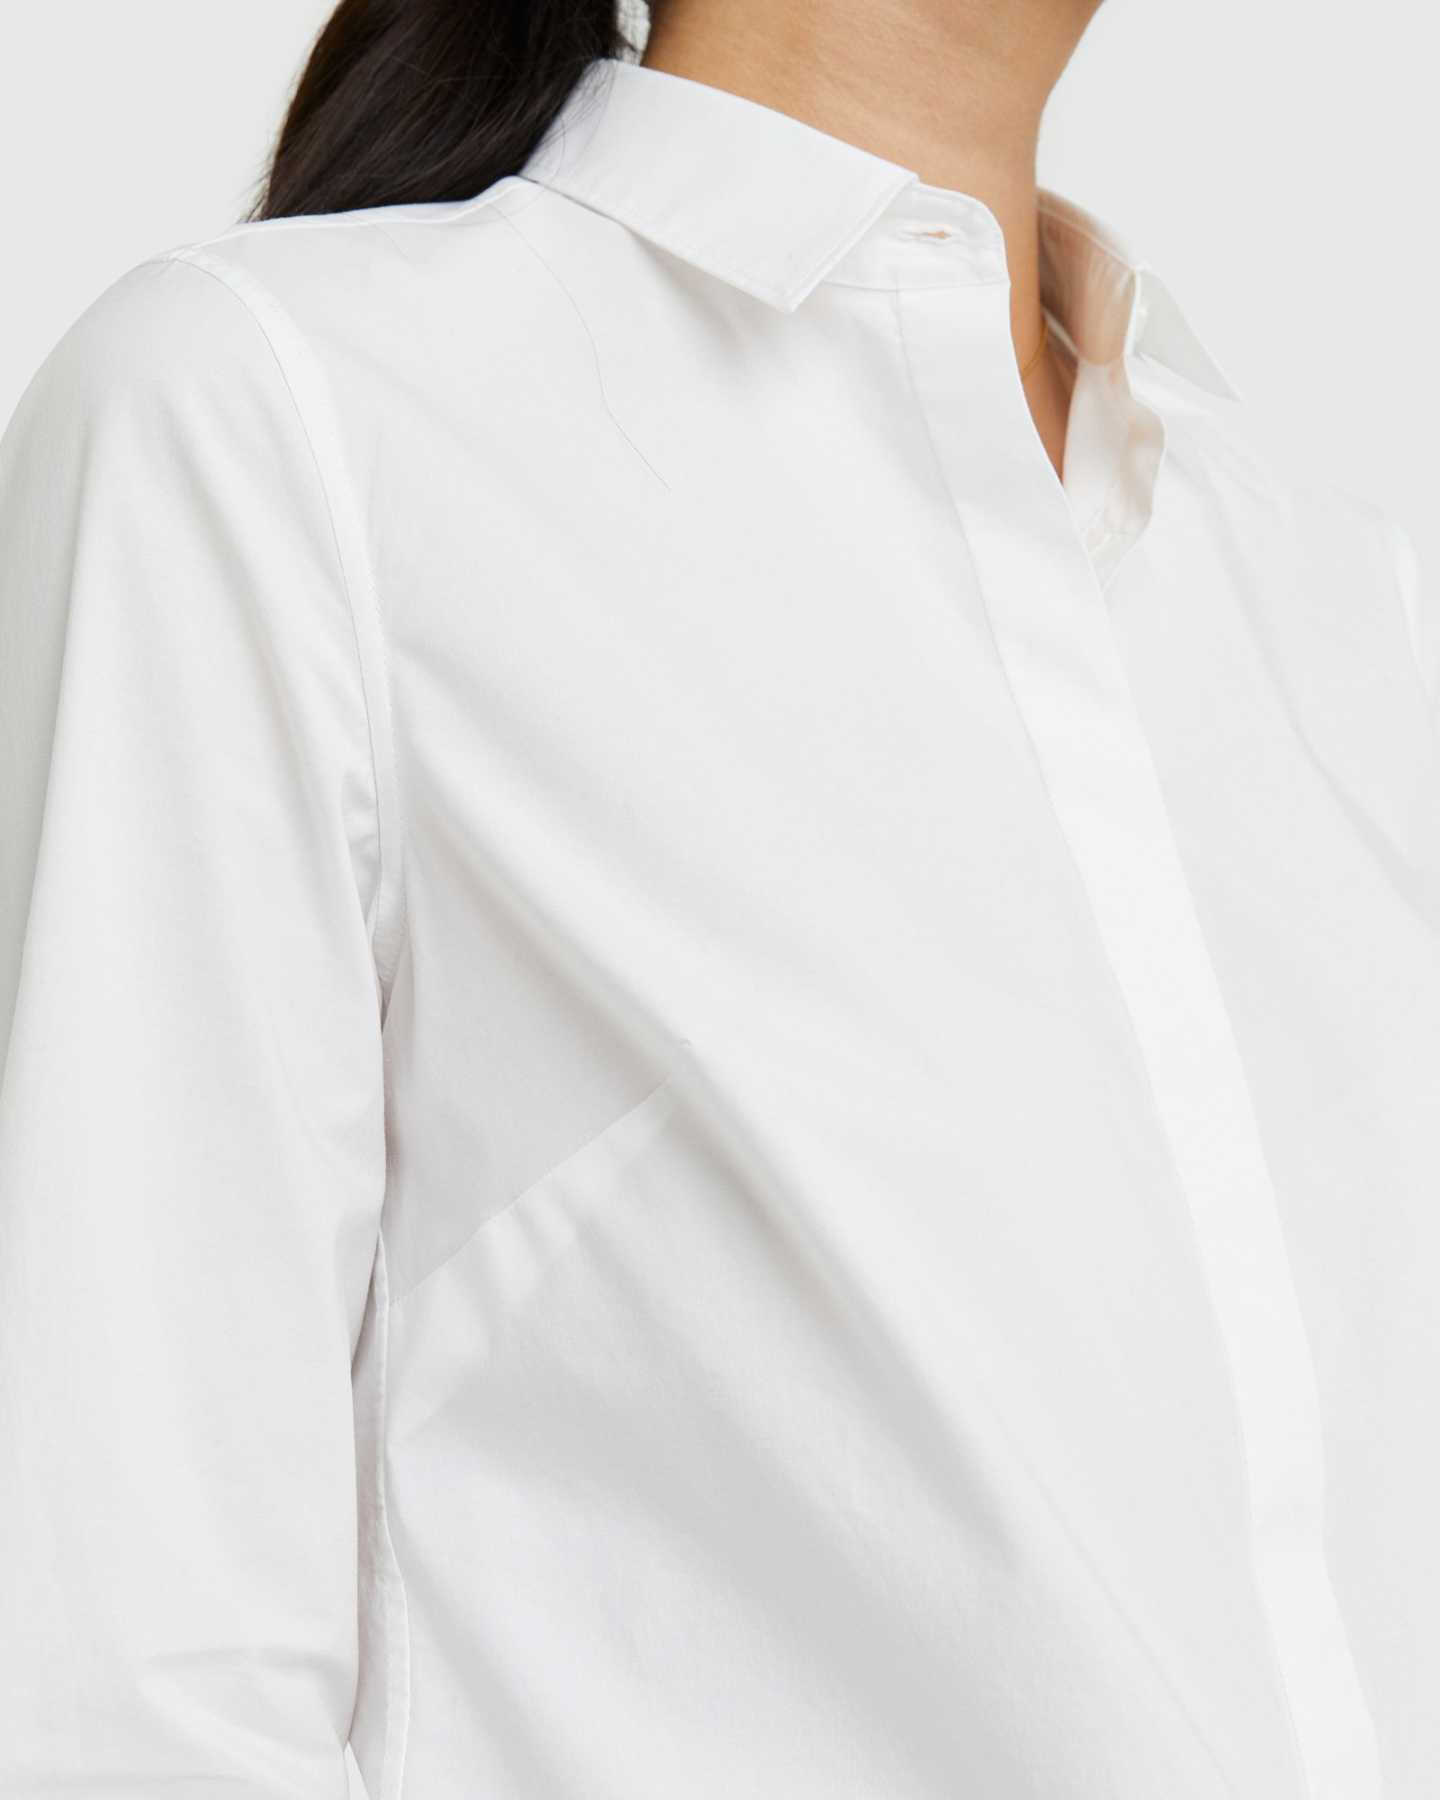 Organic Cotton Stretch Poplin Shirt - 13587171934319